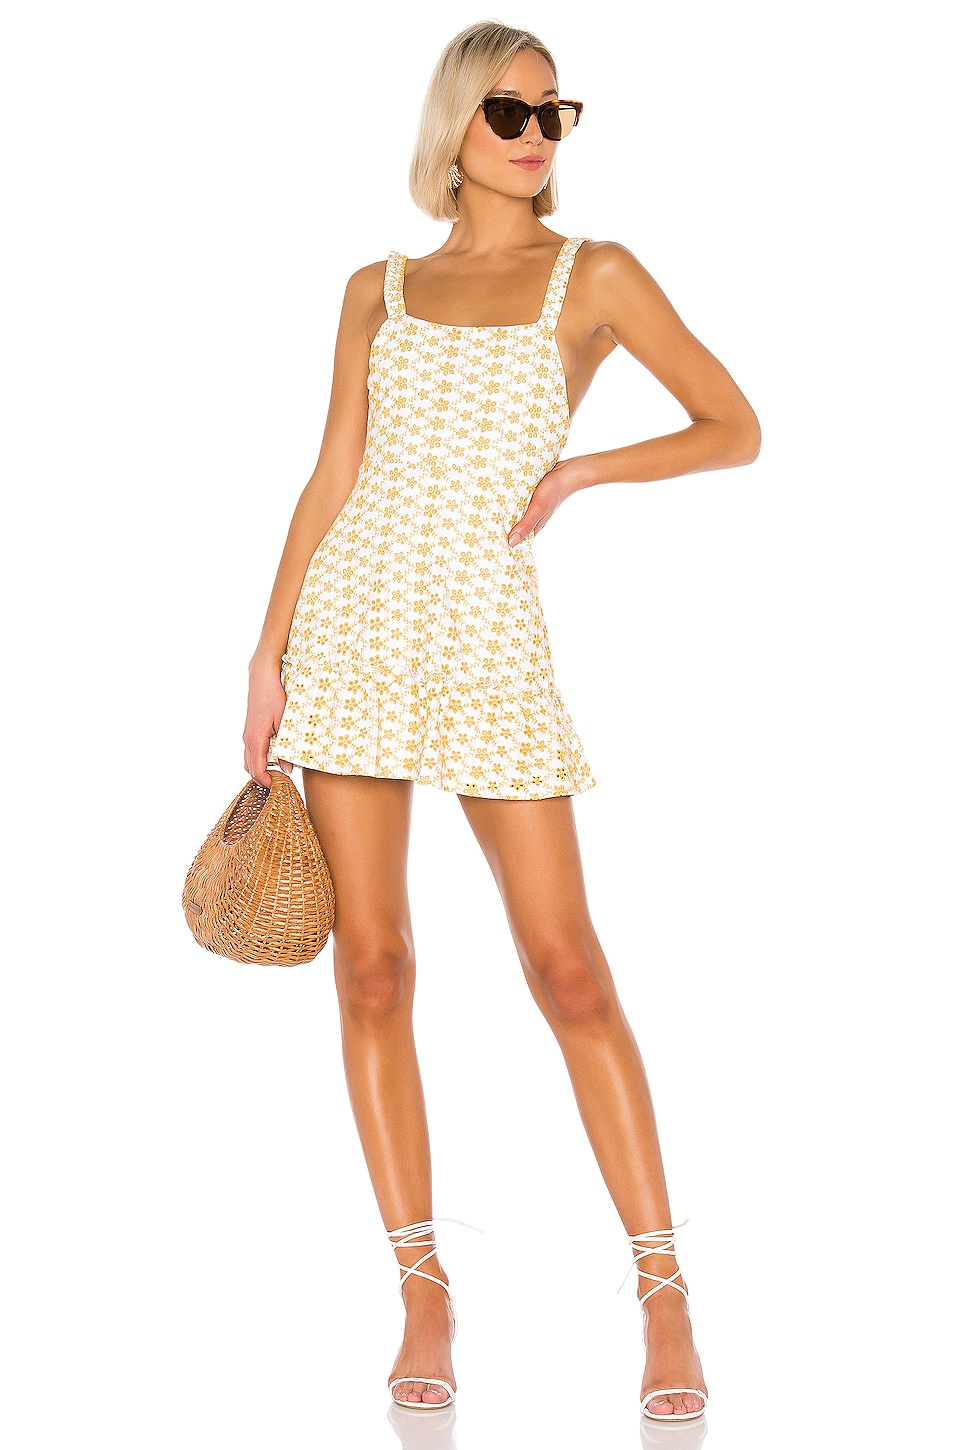 LPA Mabel Dress in White and Yellow